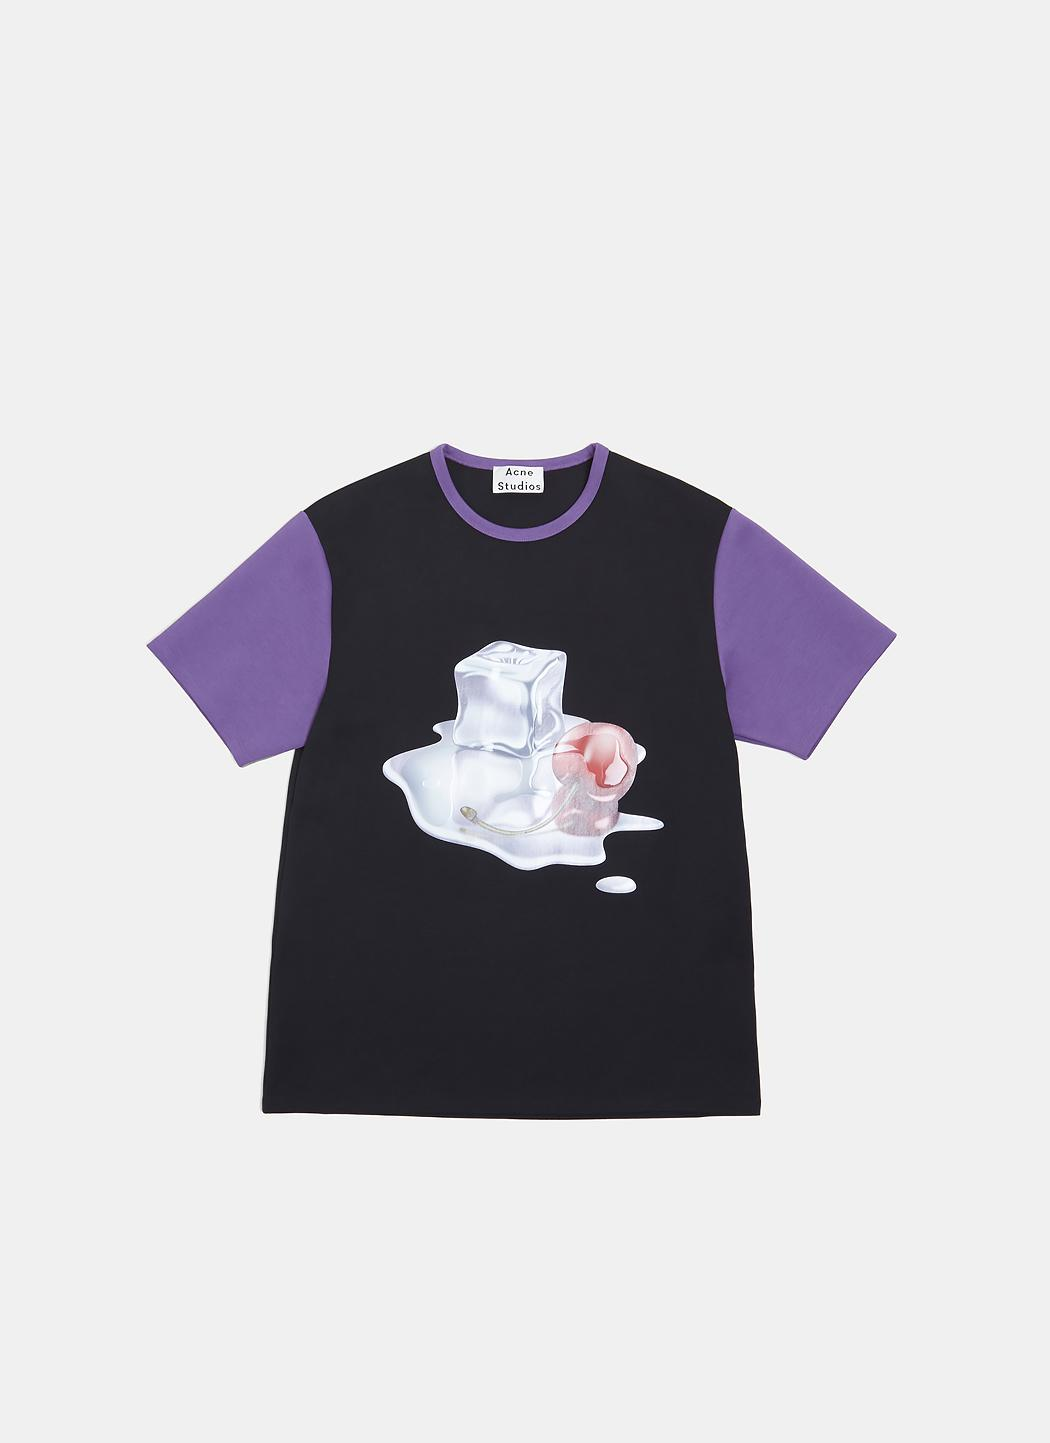 Discount Cheapest Price Ice Cube Cherry T-shirt Acne Studios With Credit Card Cheap Price QCsz0i